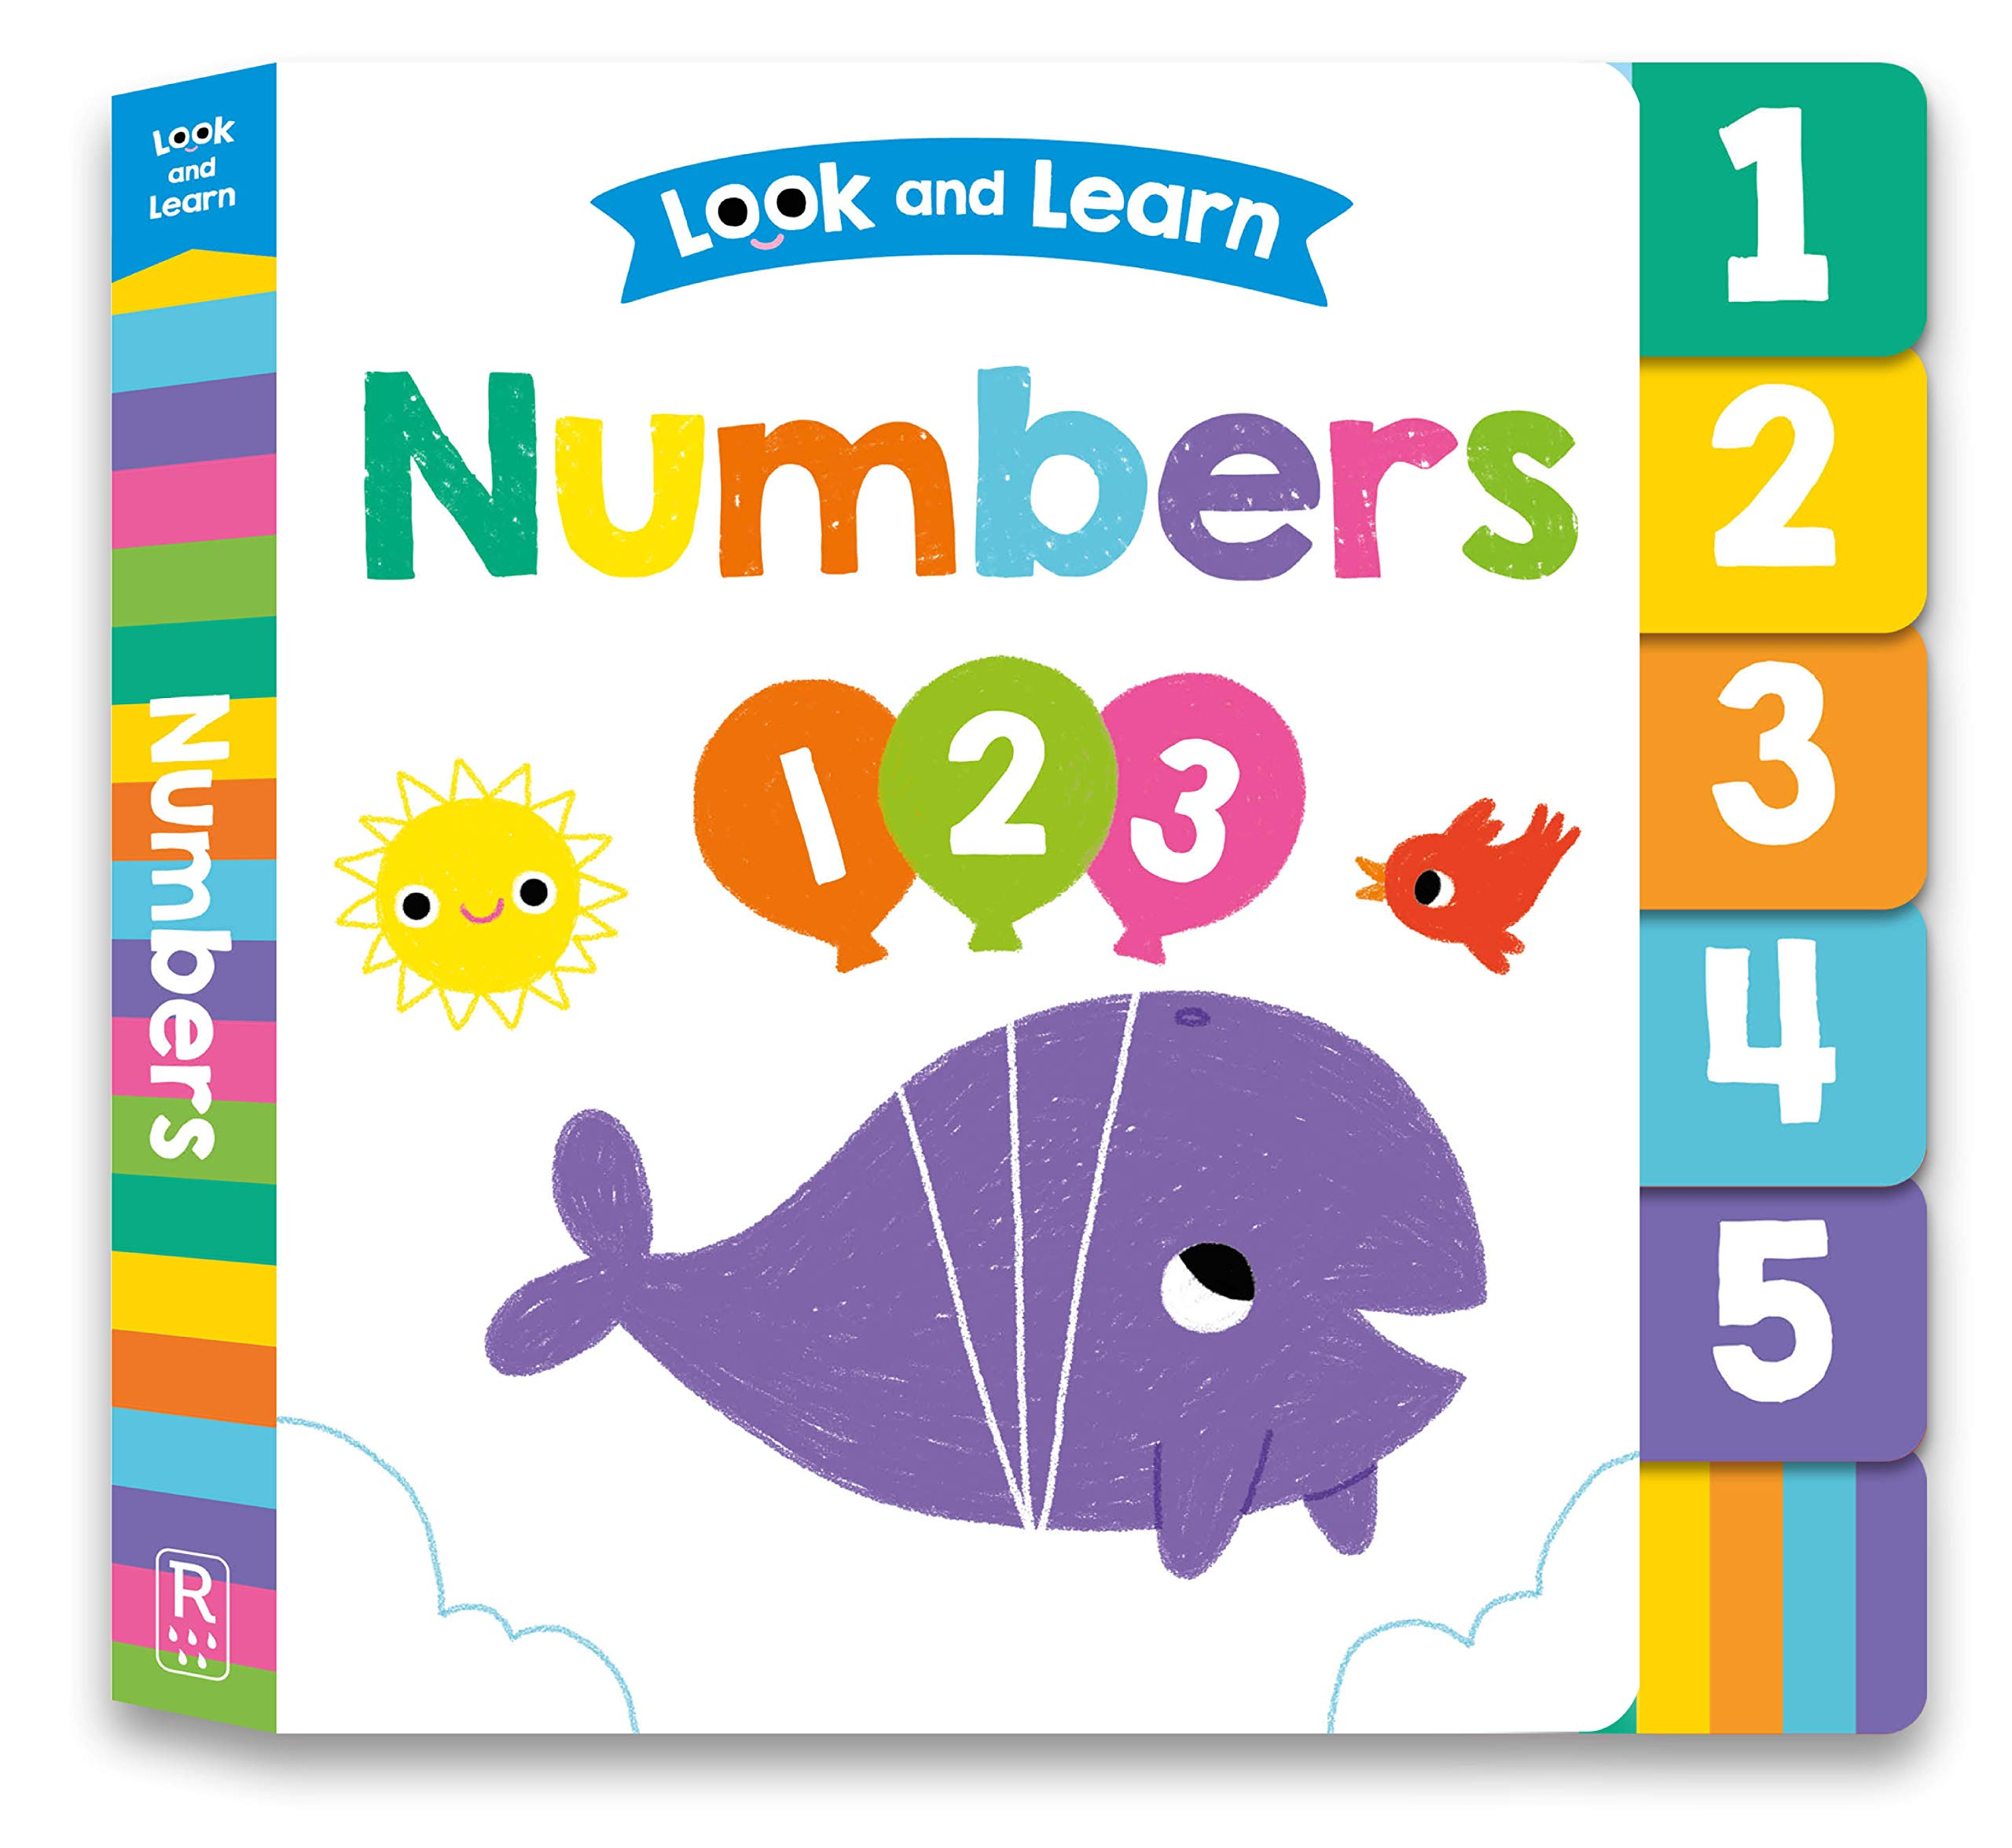 Look and Learn: Numbers: My First Seek-and-Find - Board Book